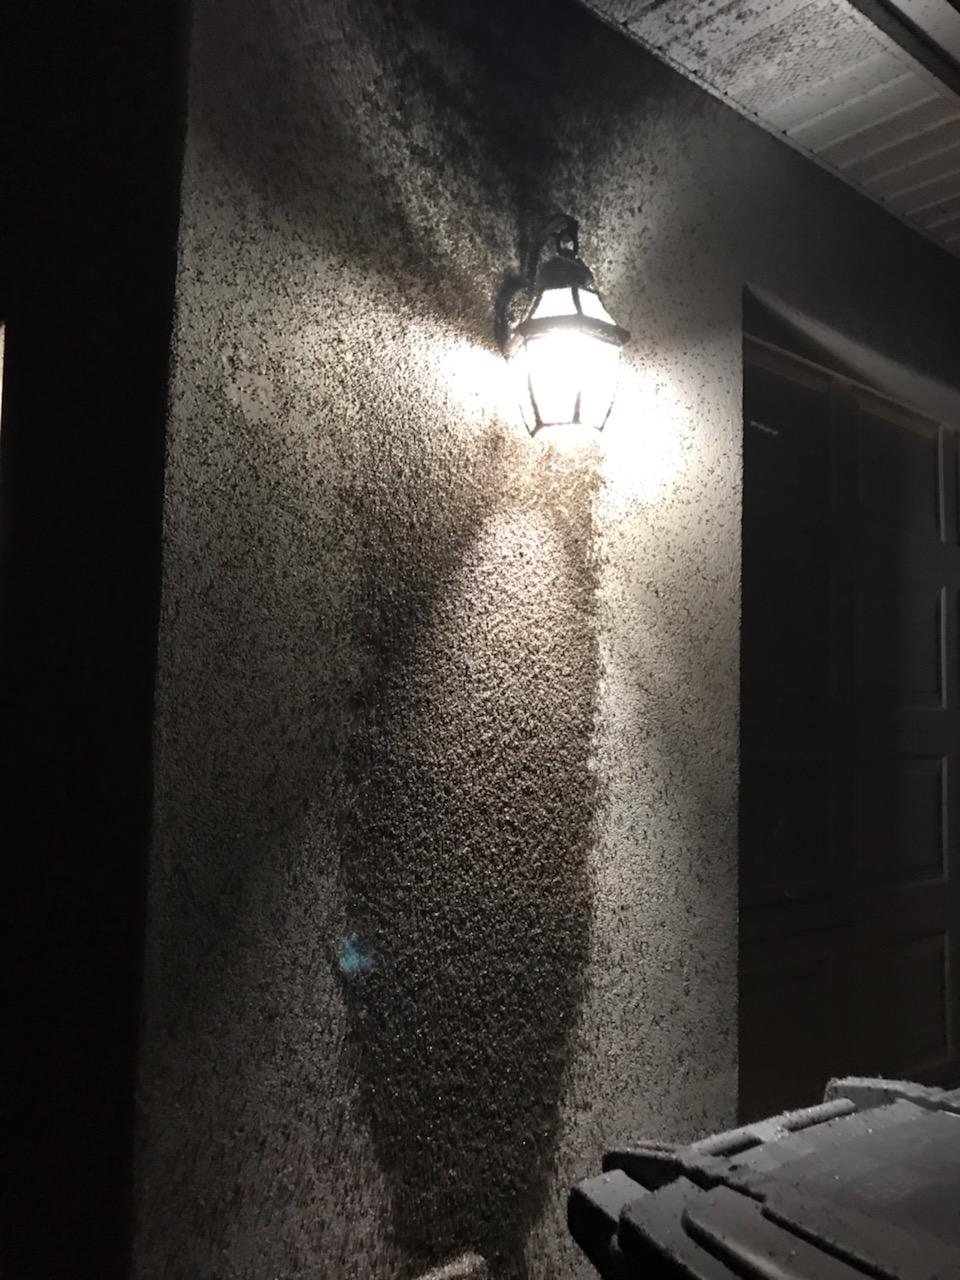 Bugged by bugs? Southern Utah residents getting swarmed by